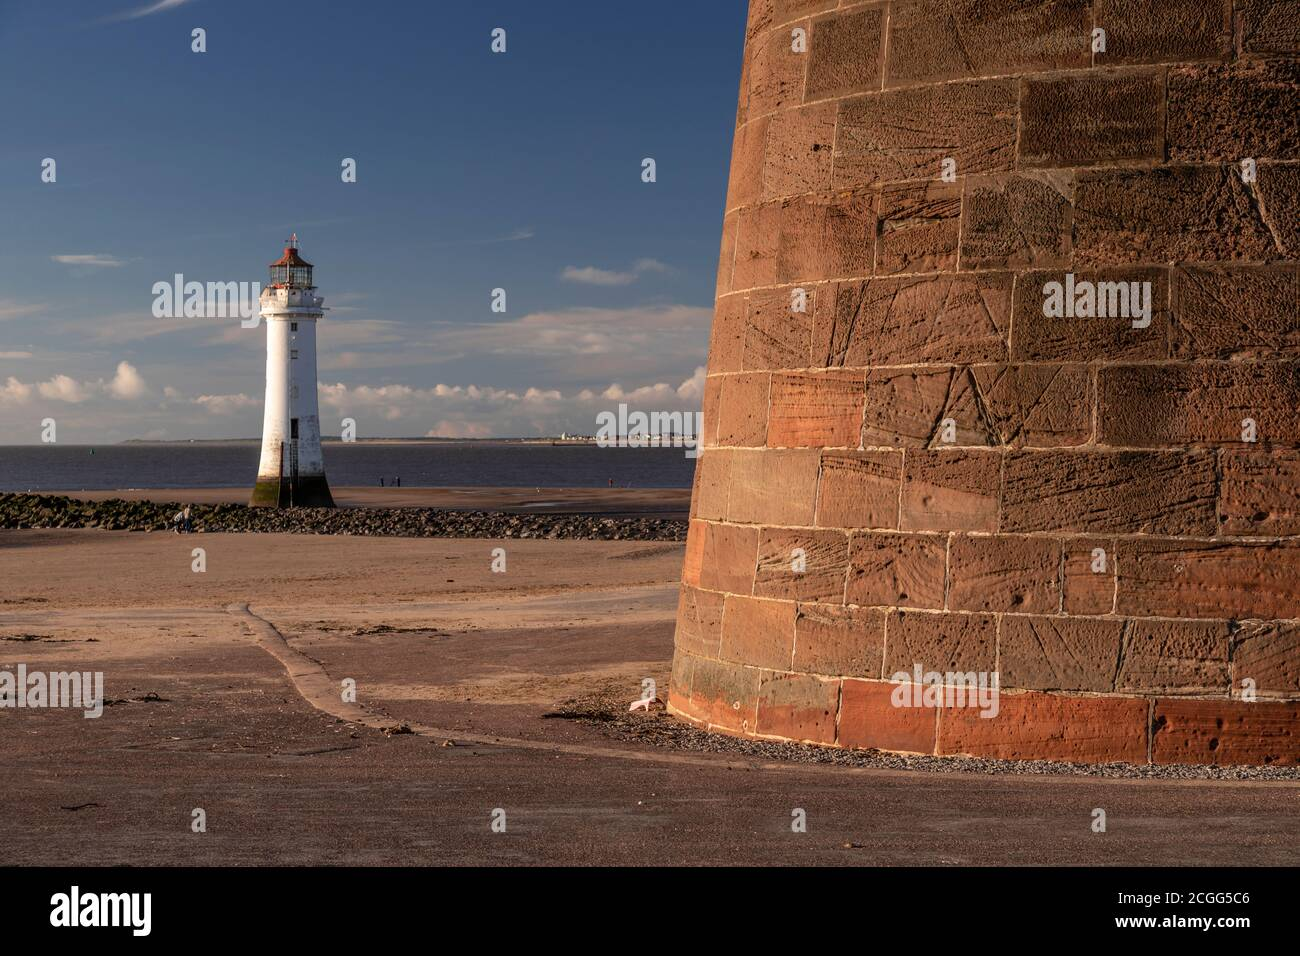 Fort Perch Rock and lighthouse, New Brighton, Wirral, Merseyside, England Stock Photo